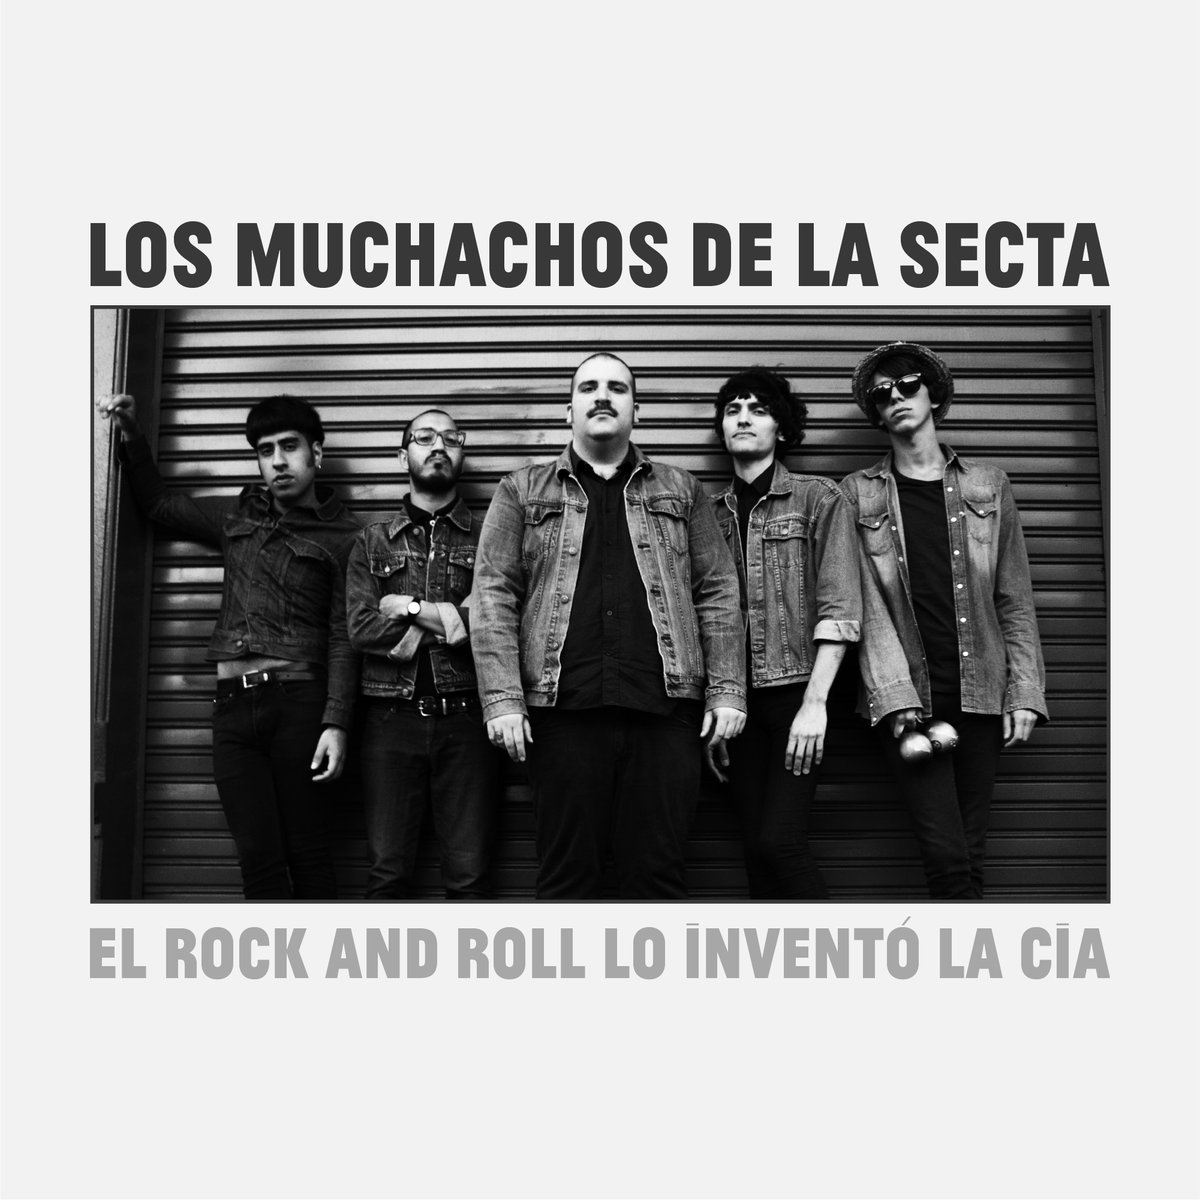 El rock and roll lo inventó la CIA